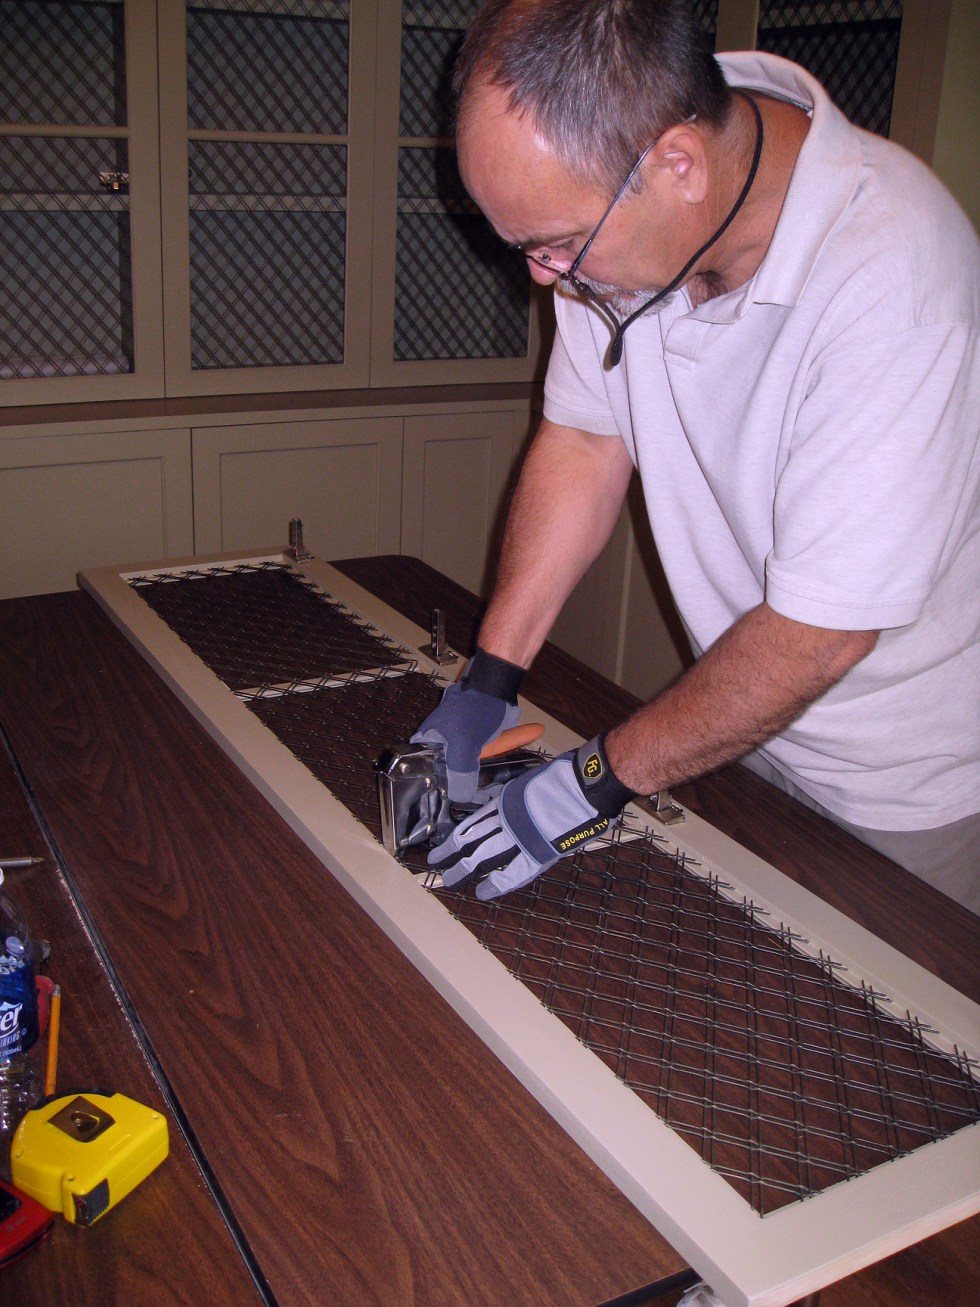 (above) Bert is securing the wire with staples to the inside of the frame on the backside of the cabinet door.